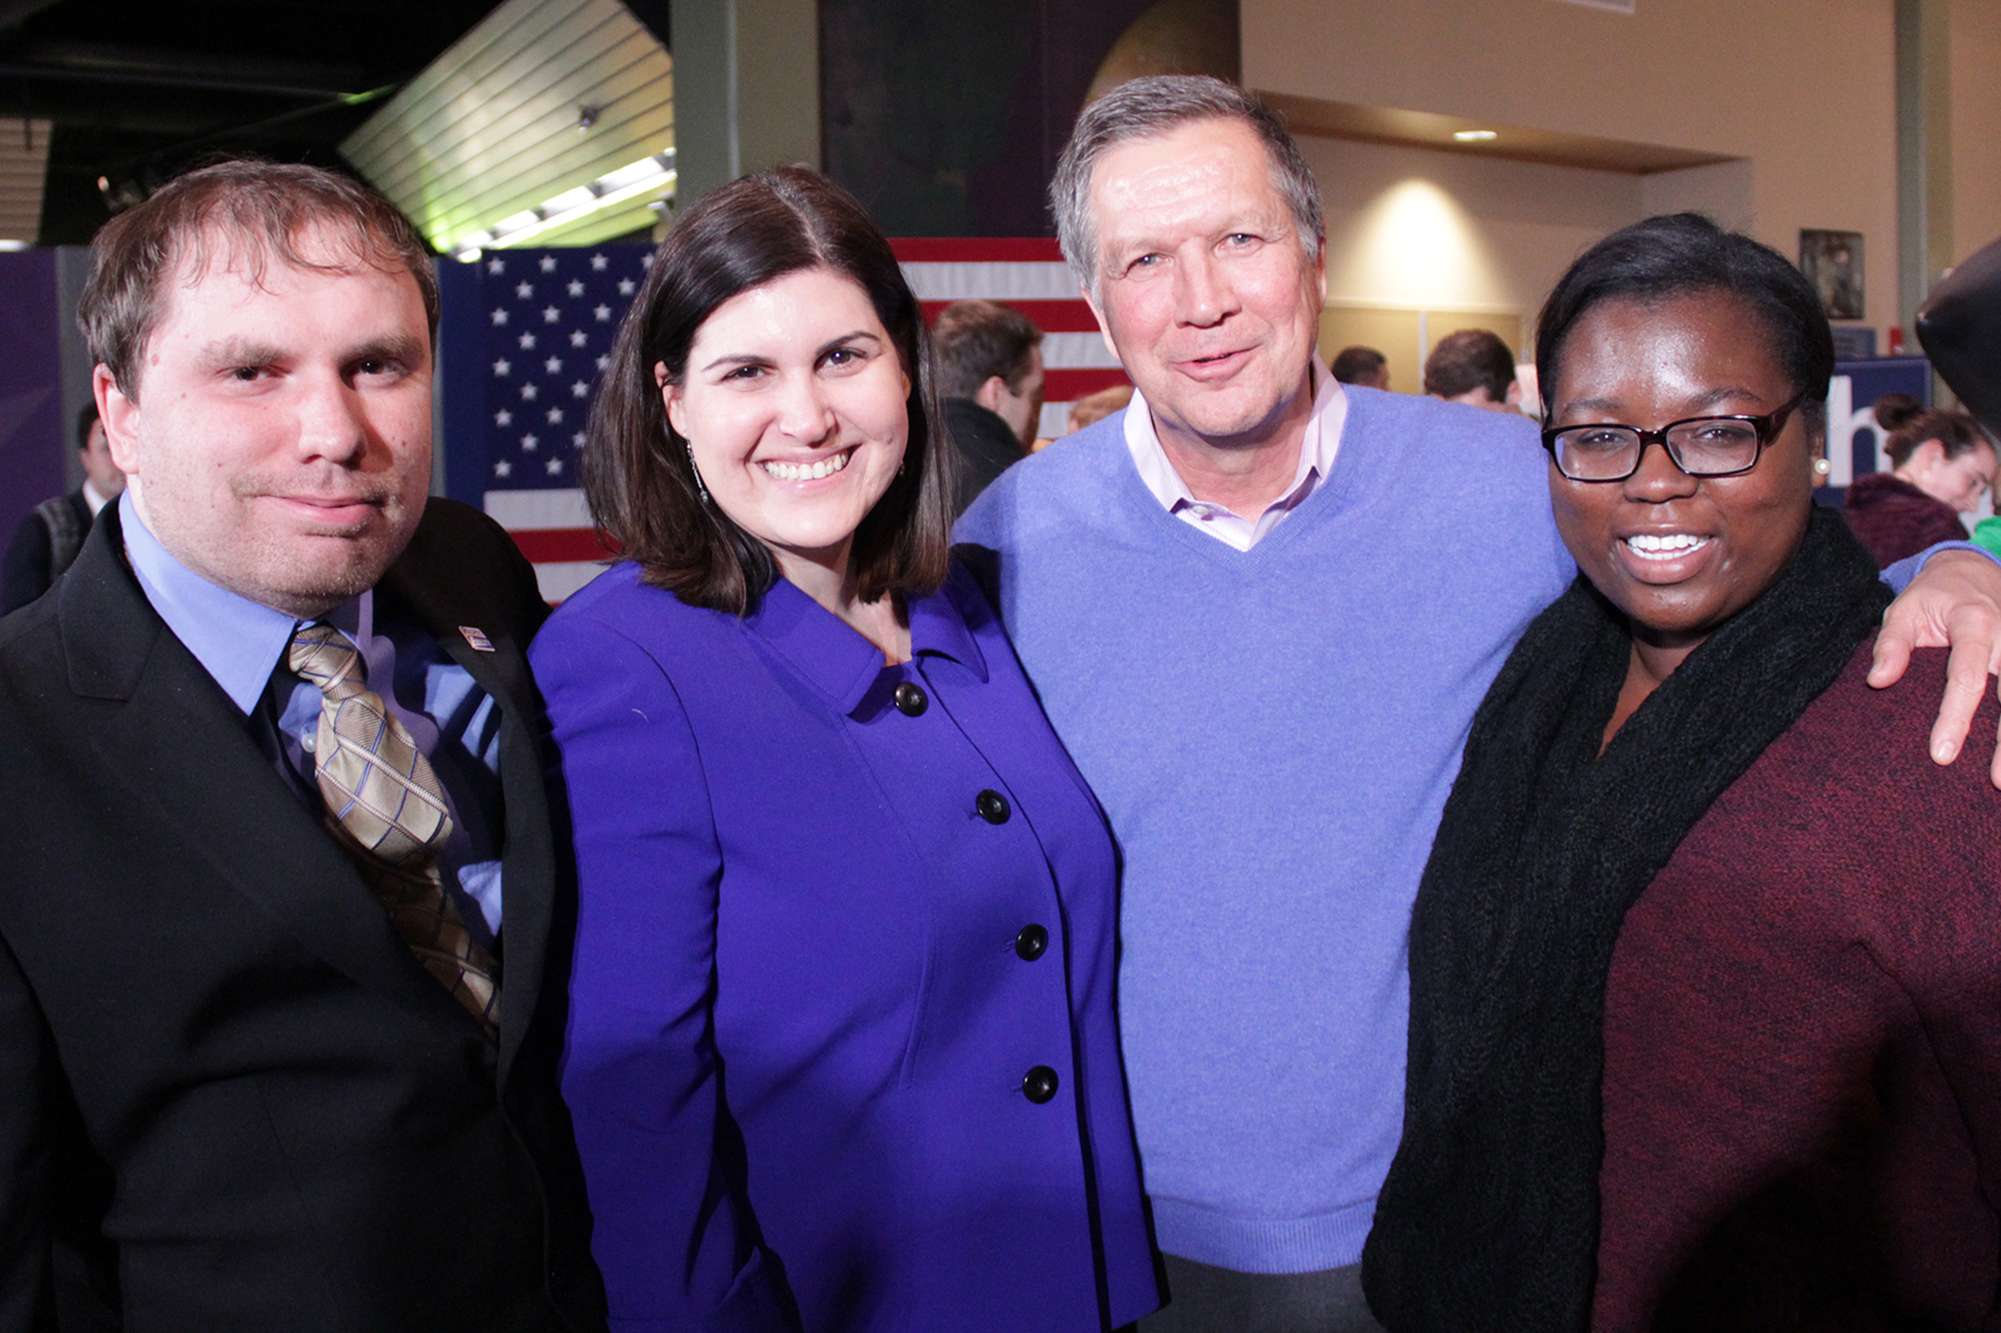 In December, James interviewed Gov. John Kasich in New Hampshire.